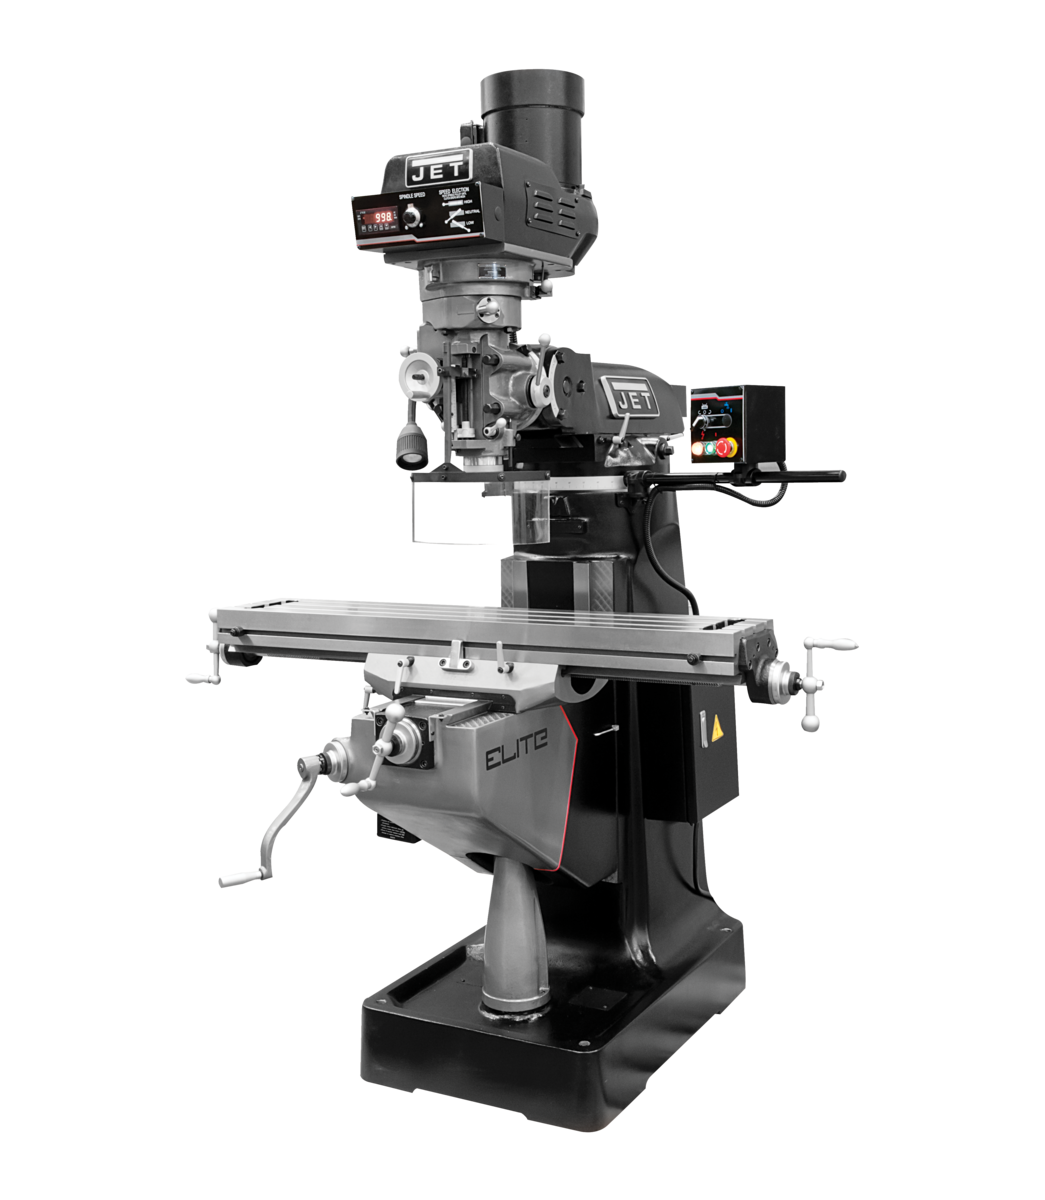 EVS-949 Mill with 3-Axis ACU-RITE 203 (Quill) DRO and Servo X, Y, Z-Axis Powerfeeds and USA Air Powered Draw Bar